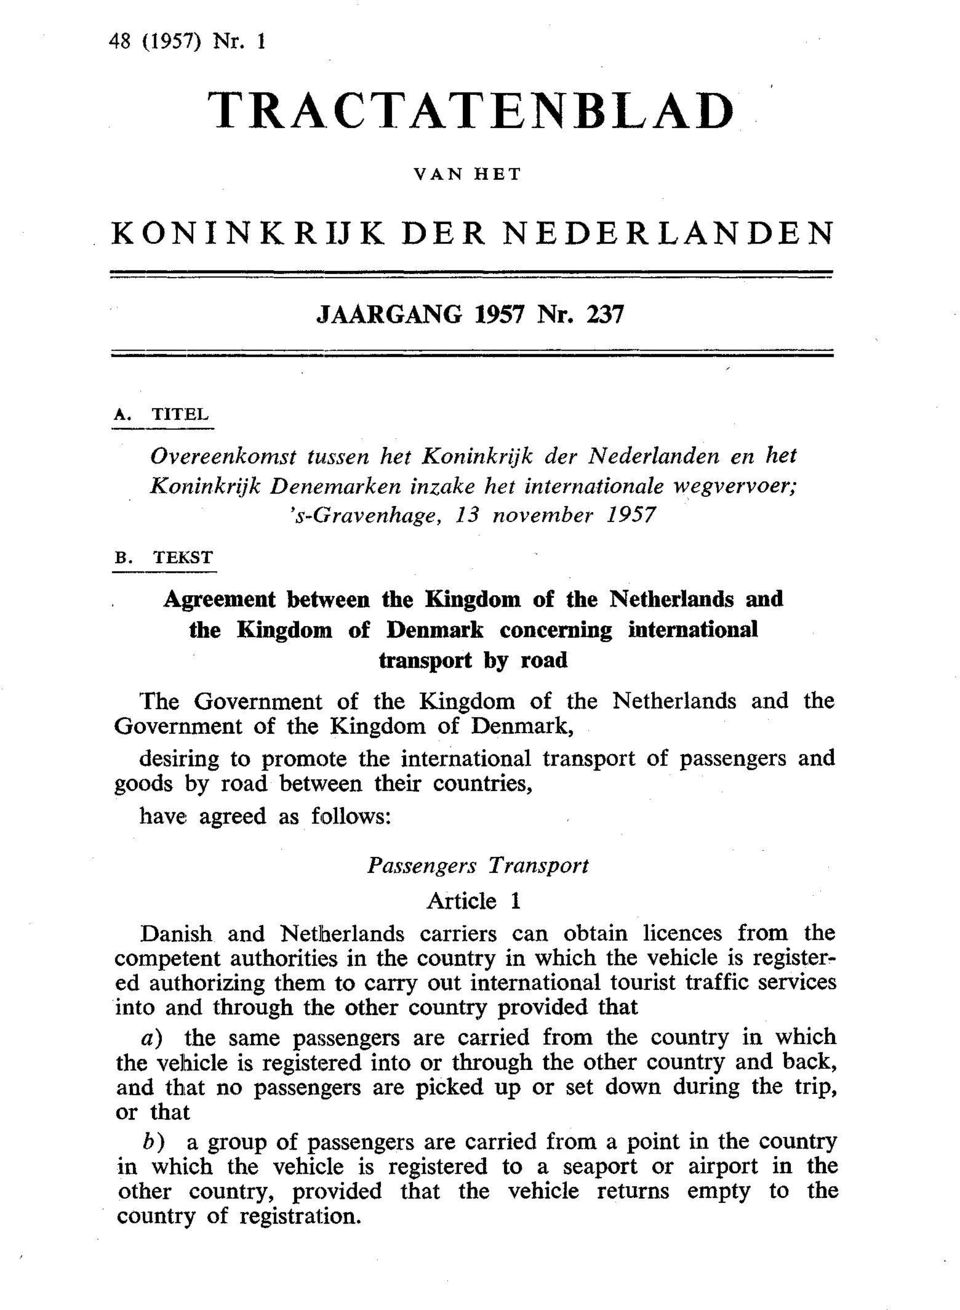 TEKST Agreement between the Kingdom of the Netherlands and the Kingdom of Denmark concerning international transport by road The Government of the Kingdom of the Netherlands and the Government of the